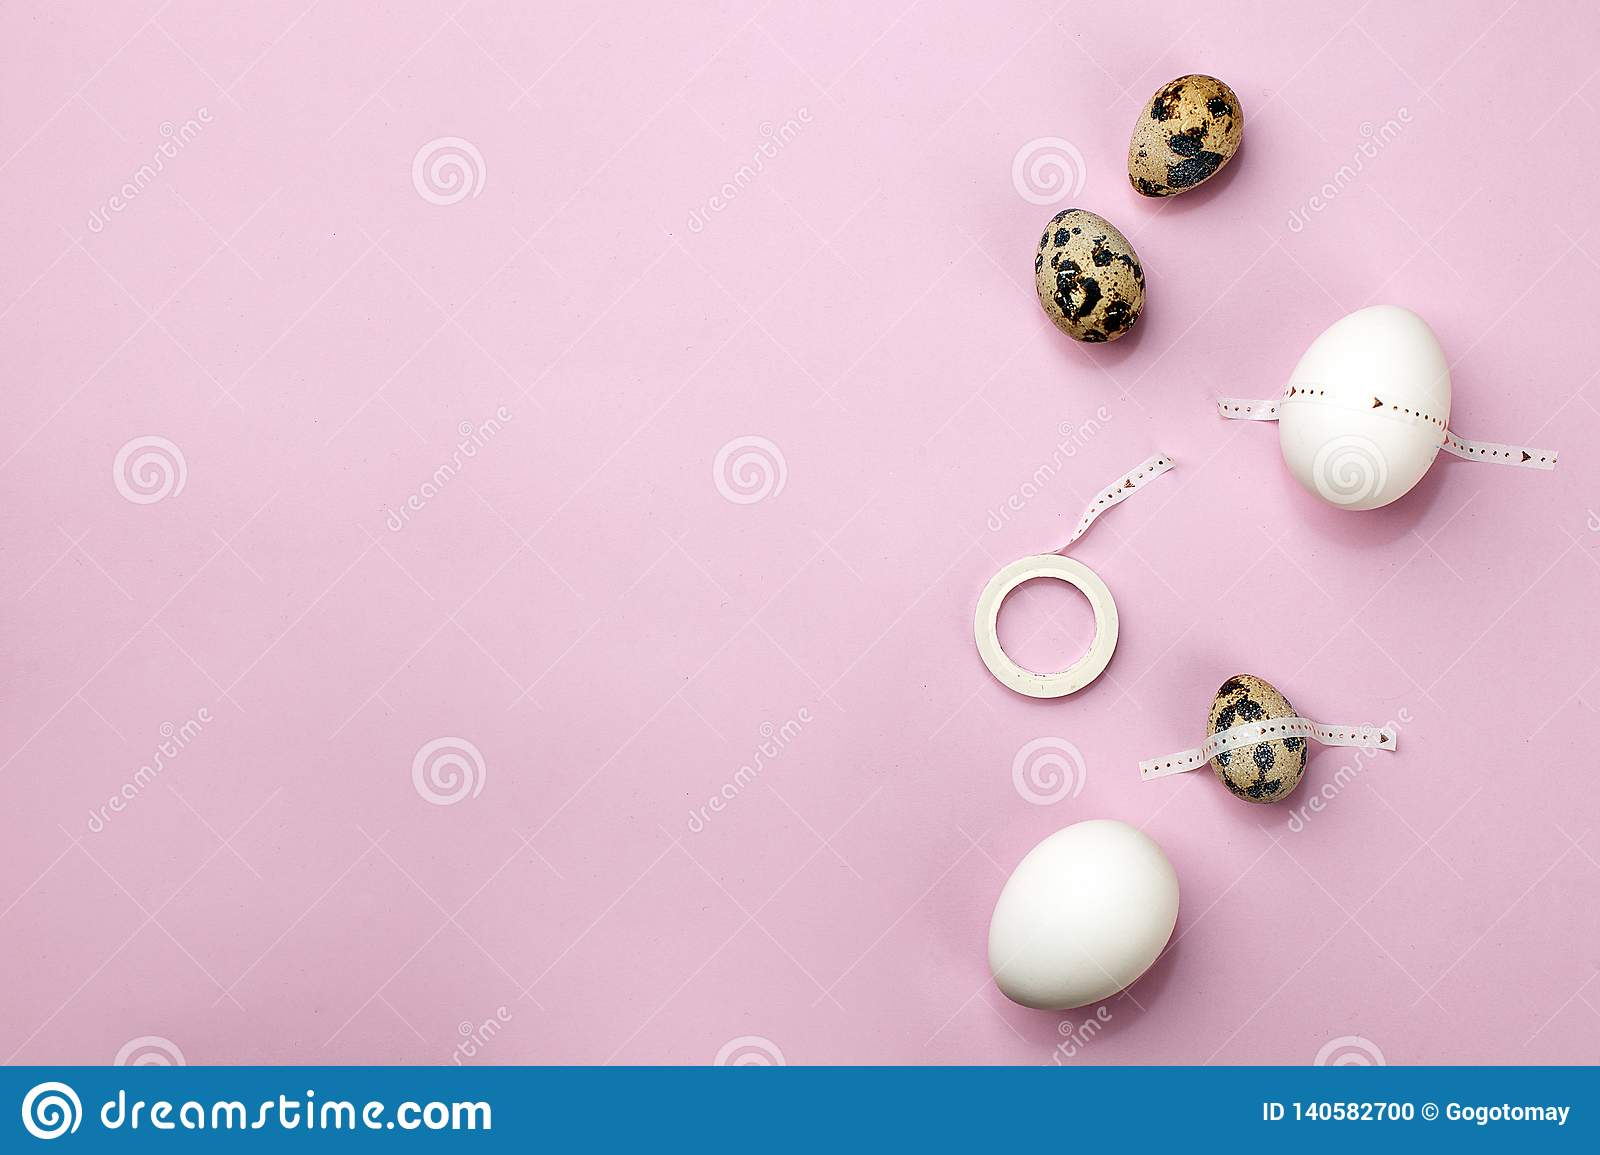 Easter vibes holiday card. Modern art. Celebrate Easter tradition. Set of eggs with scotch tape on pink purple background, minimal